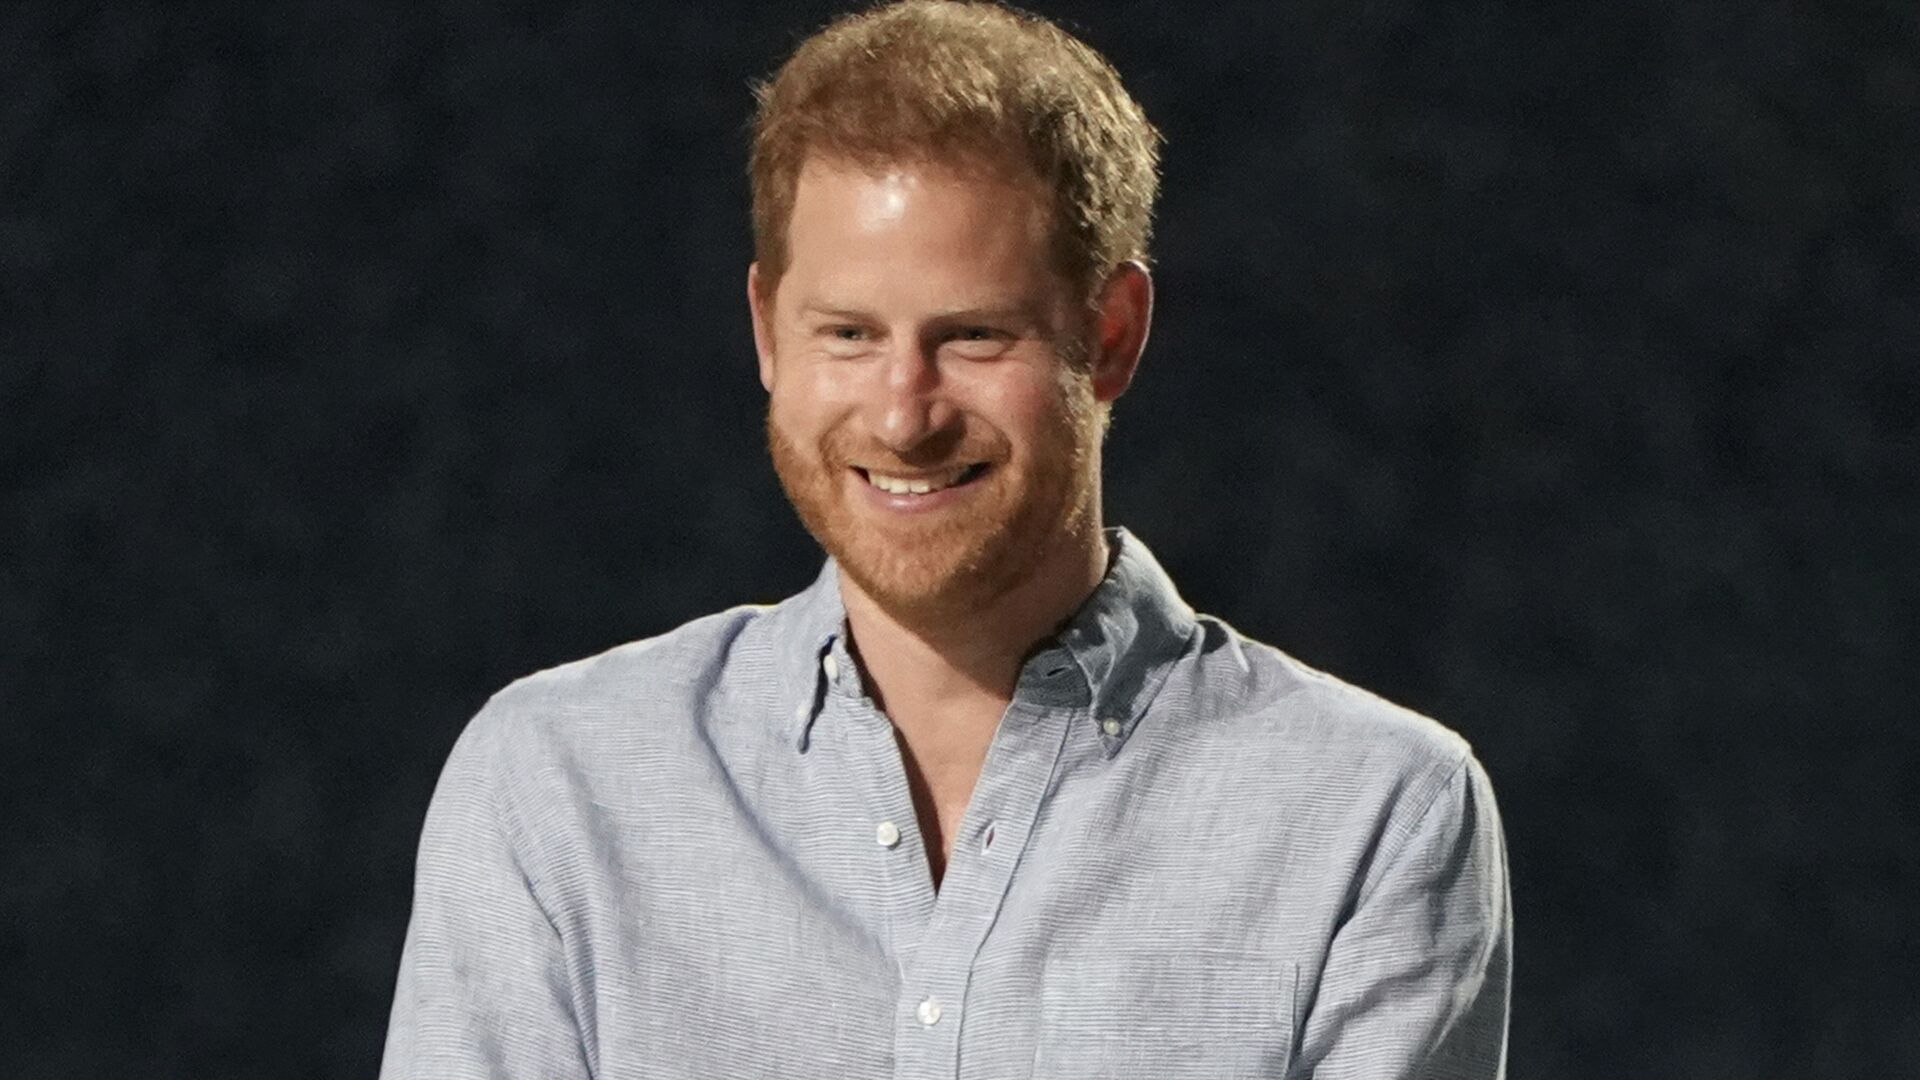 Prince Harry, Duke of Sussex, speaks at Vax Live: The Concert to Reunite the World on May 2, 2021, in Inglewood, Calif - Sputnik International, 1920, 25.07.2021